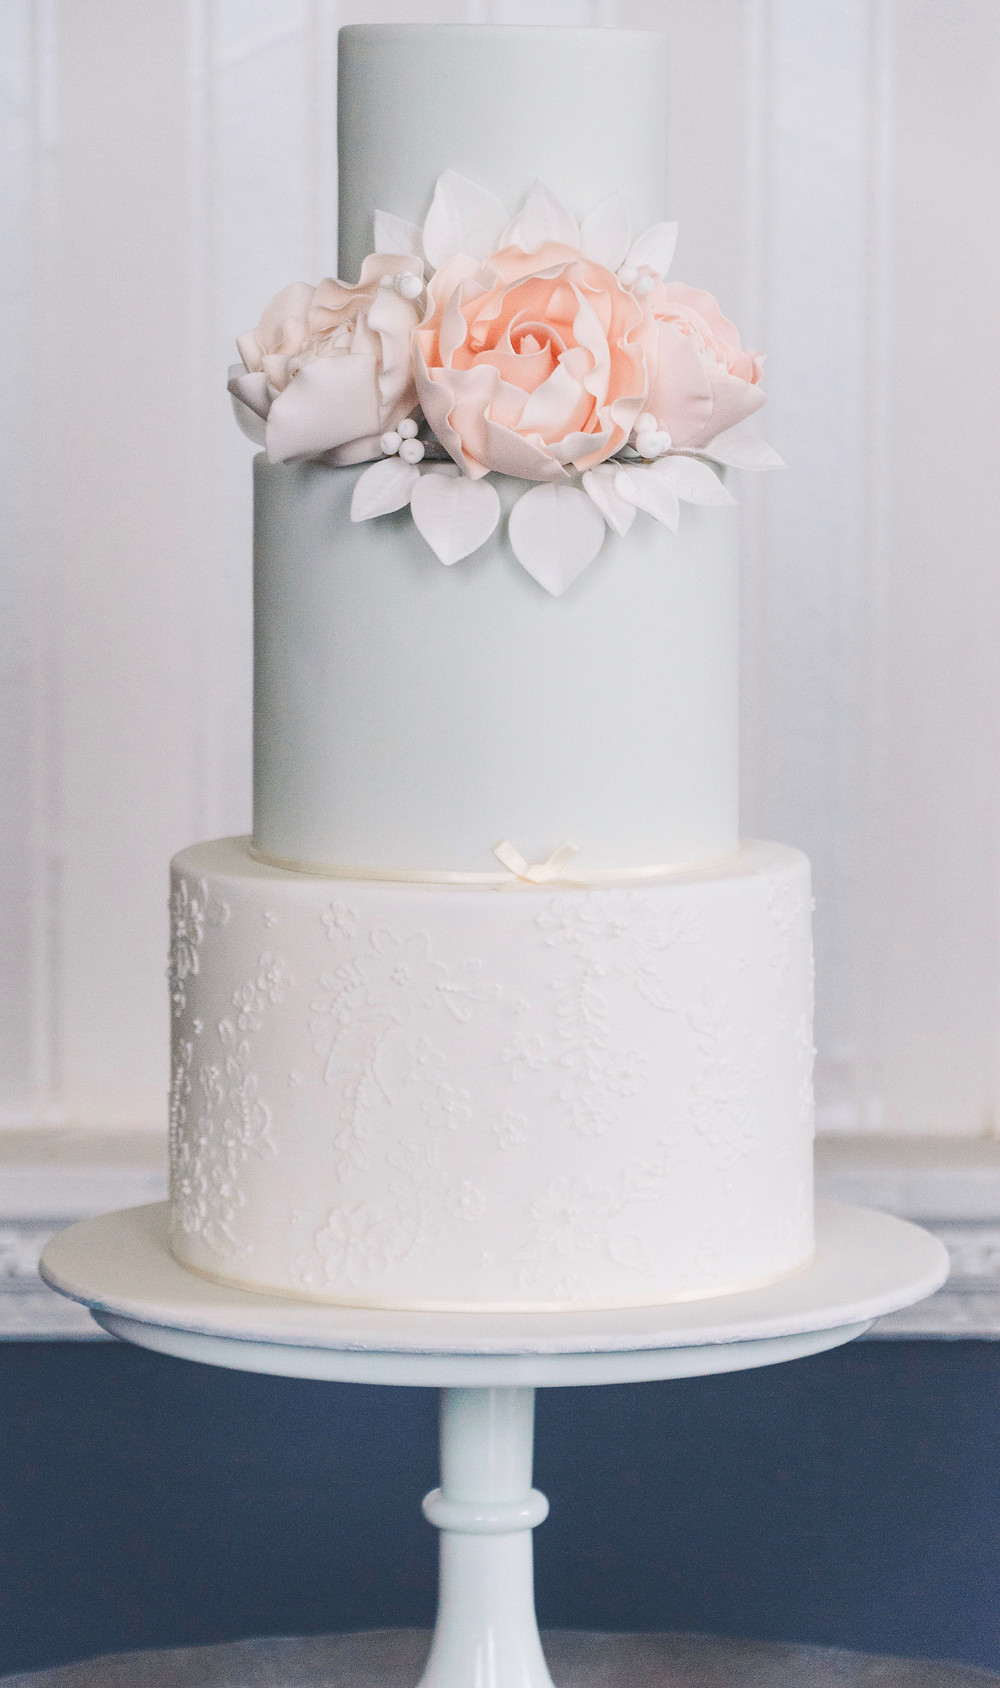 The Wedding Reporters - Cake Designer South West - Zaza Marcelle